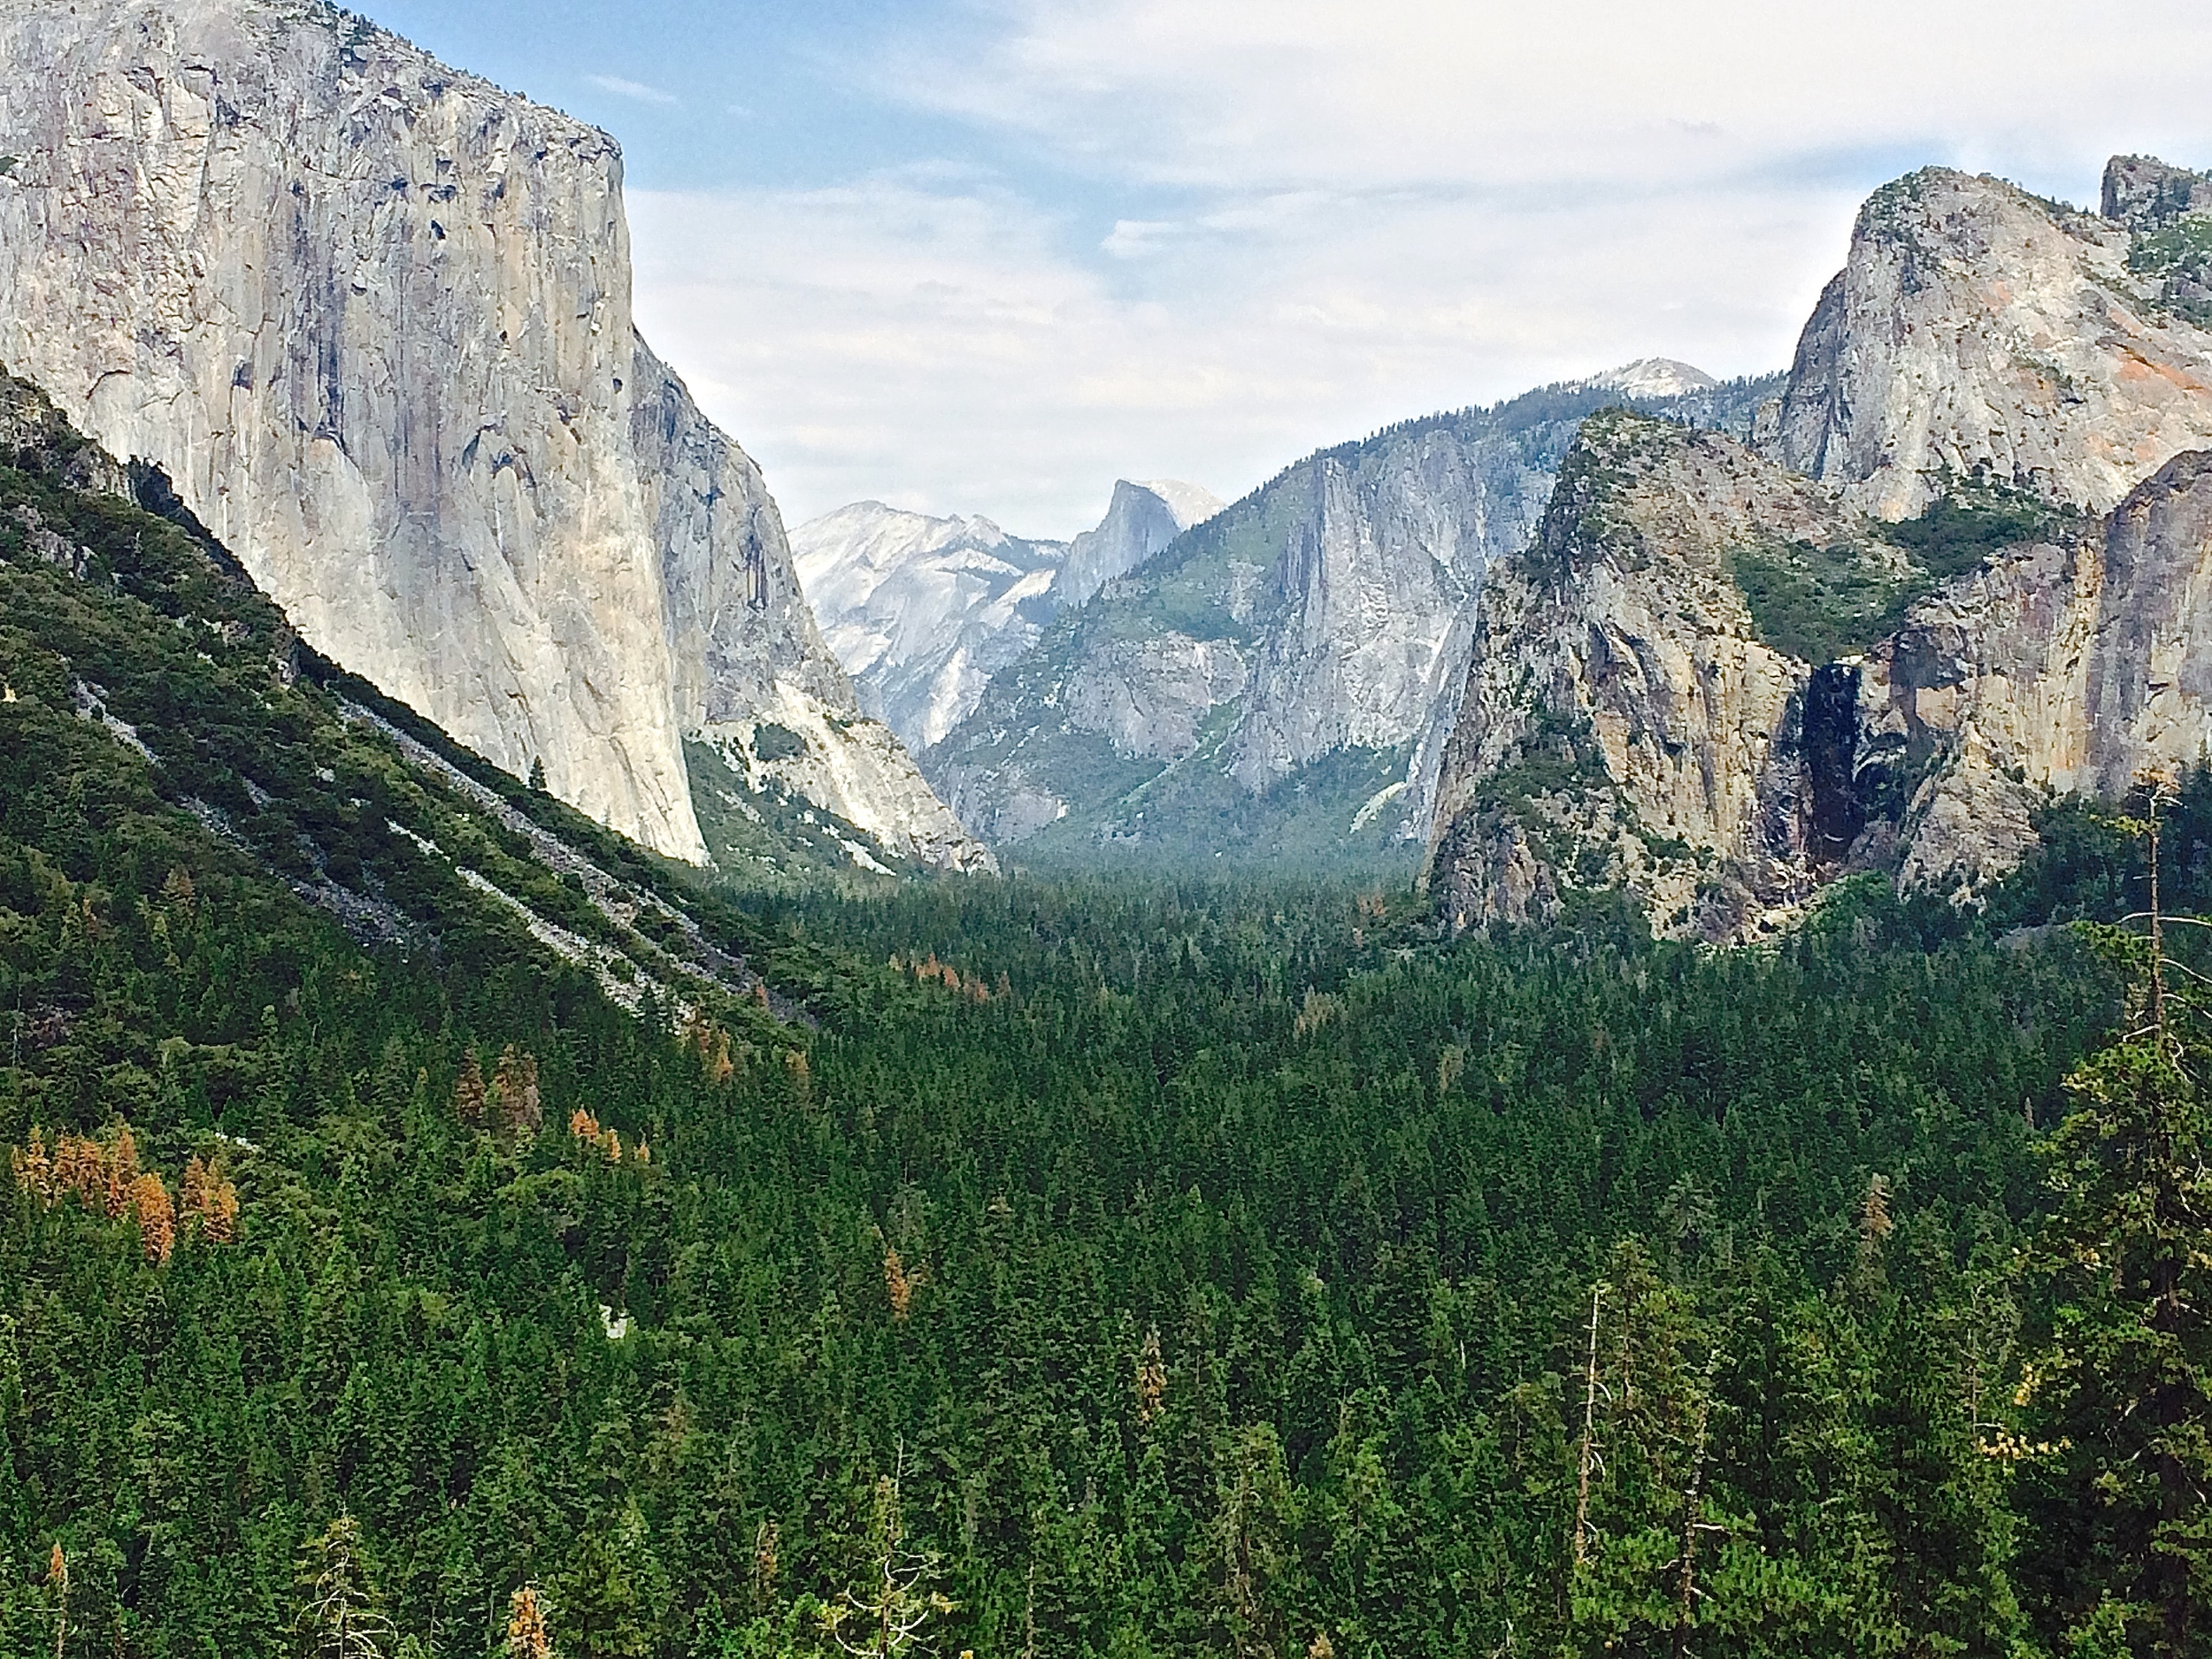 The view down Yosemite Valley